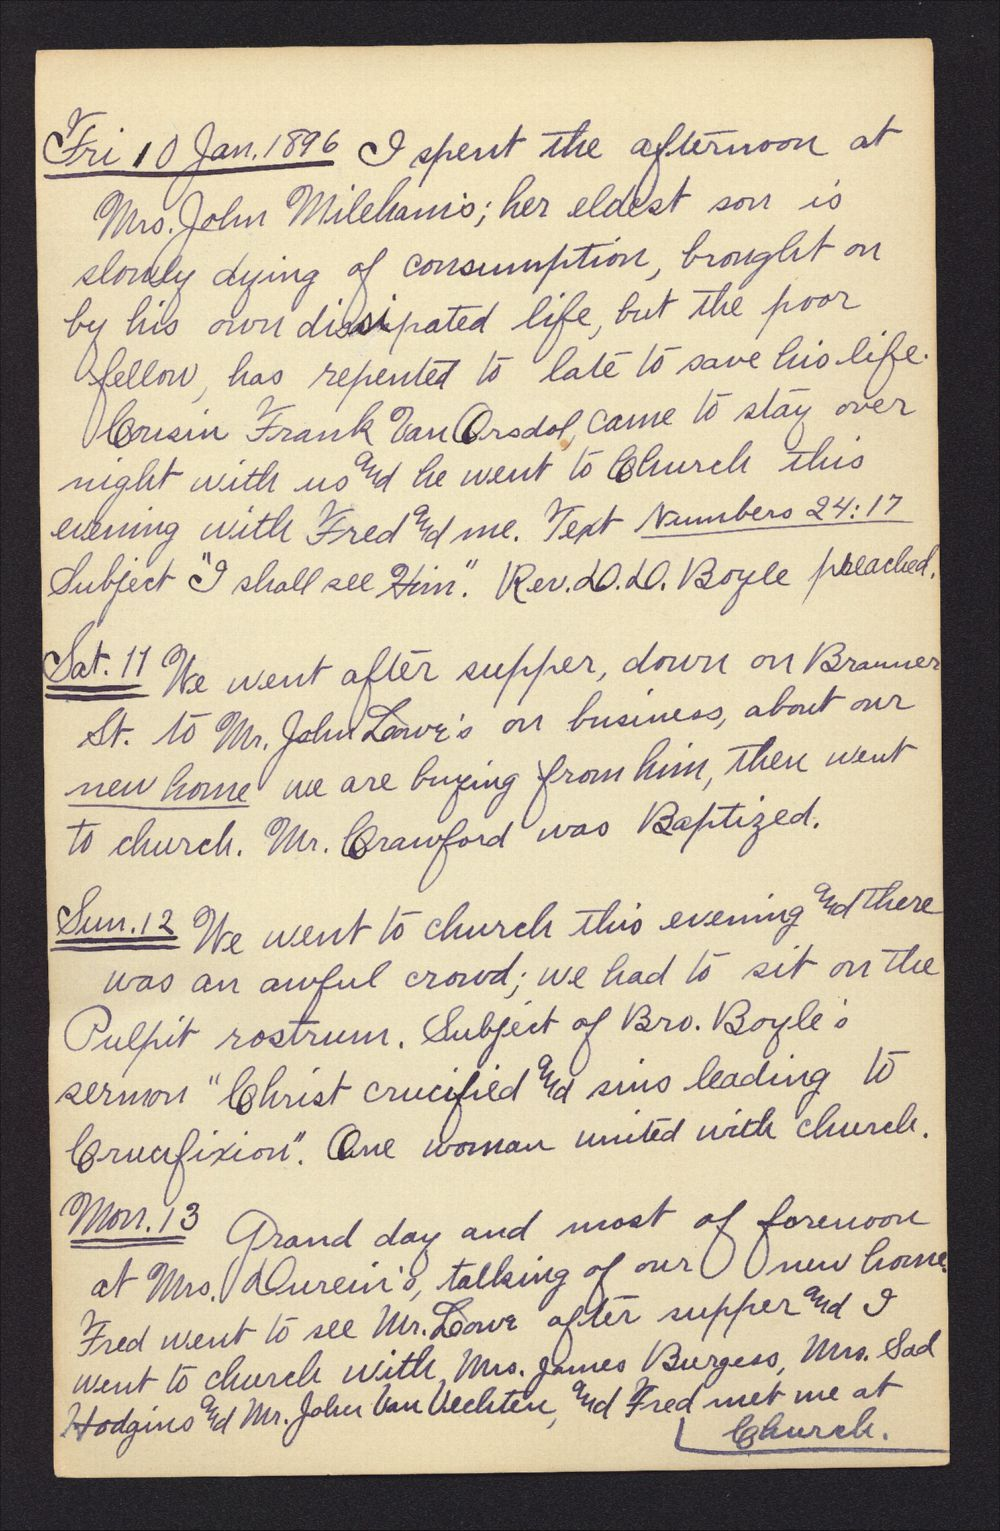 Martha Farnsworth diary - Jan 10, 1896